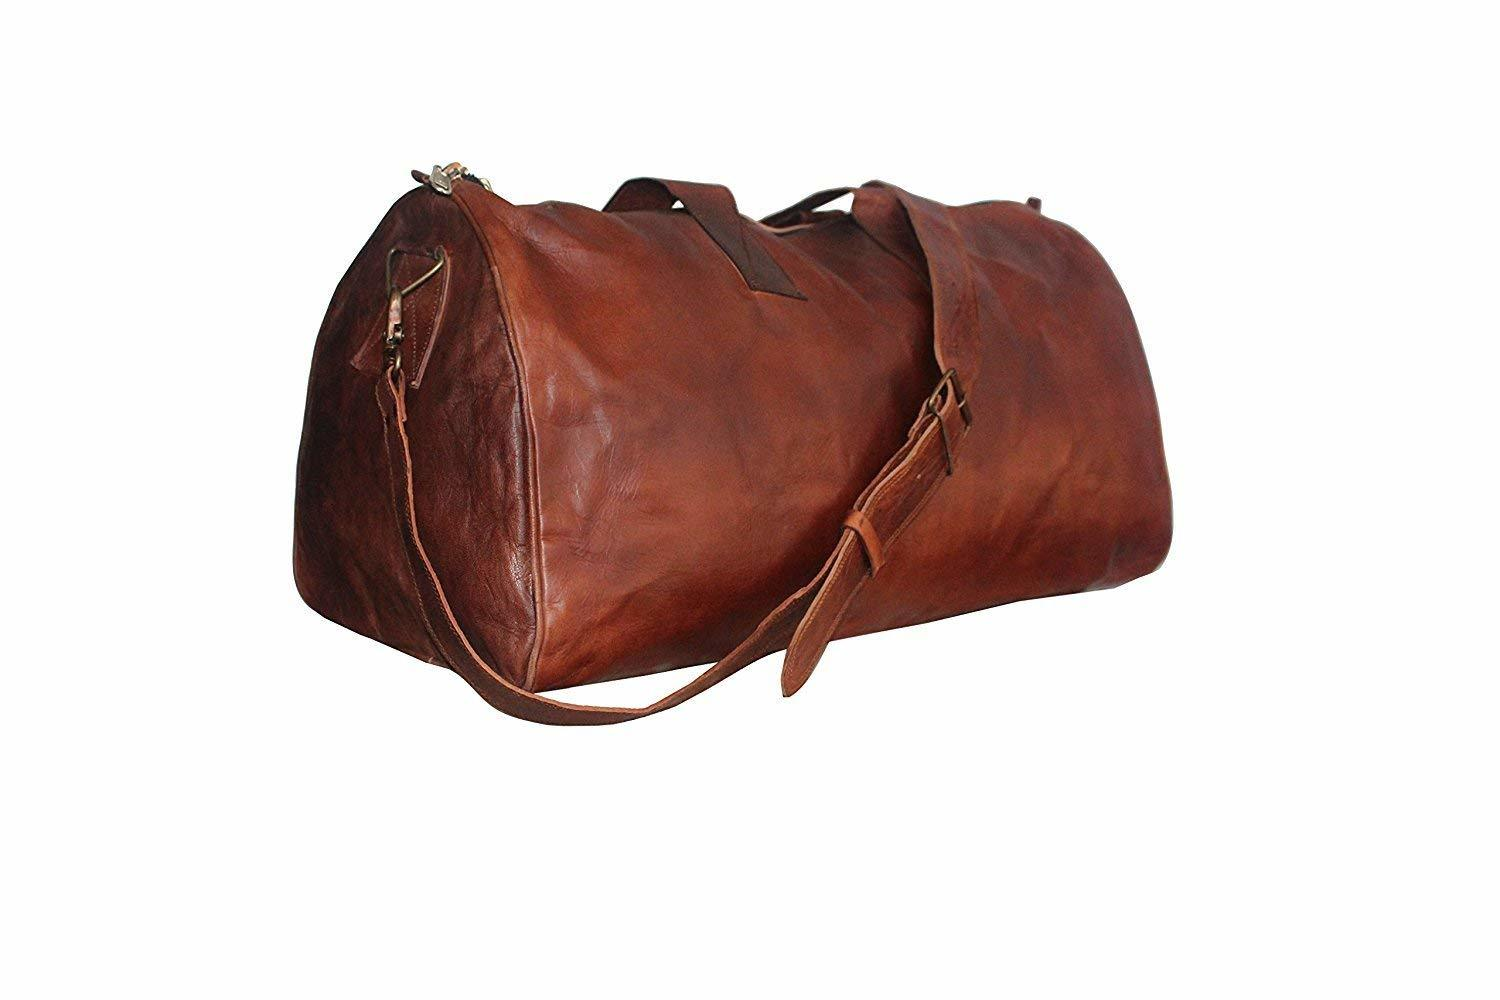 Leather Vintage-style Duffel Travel Bag